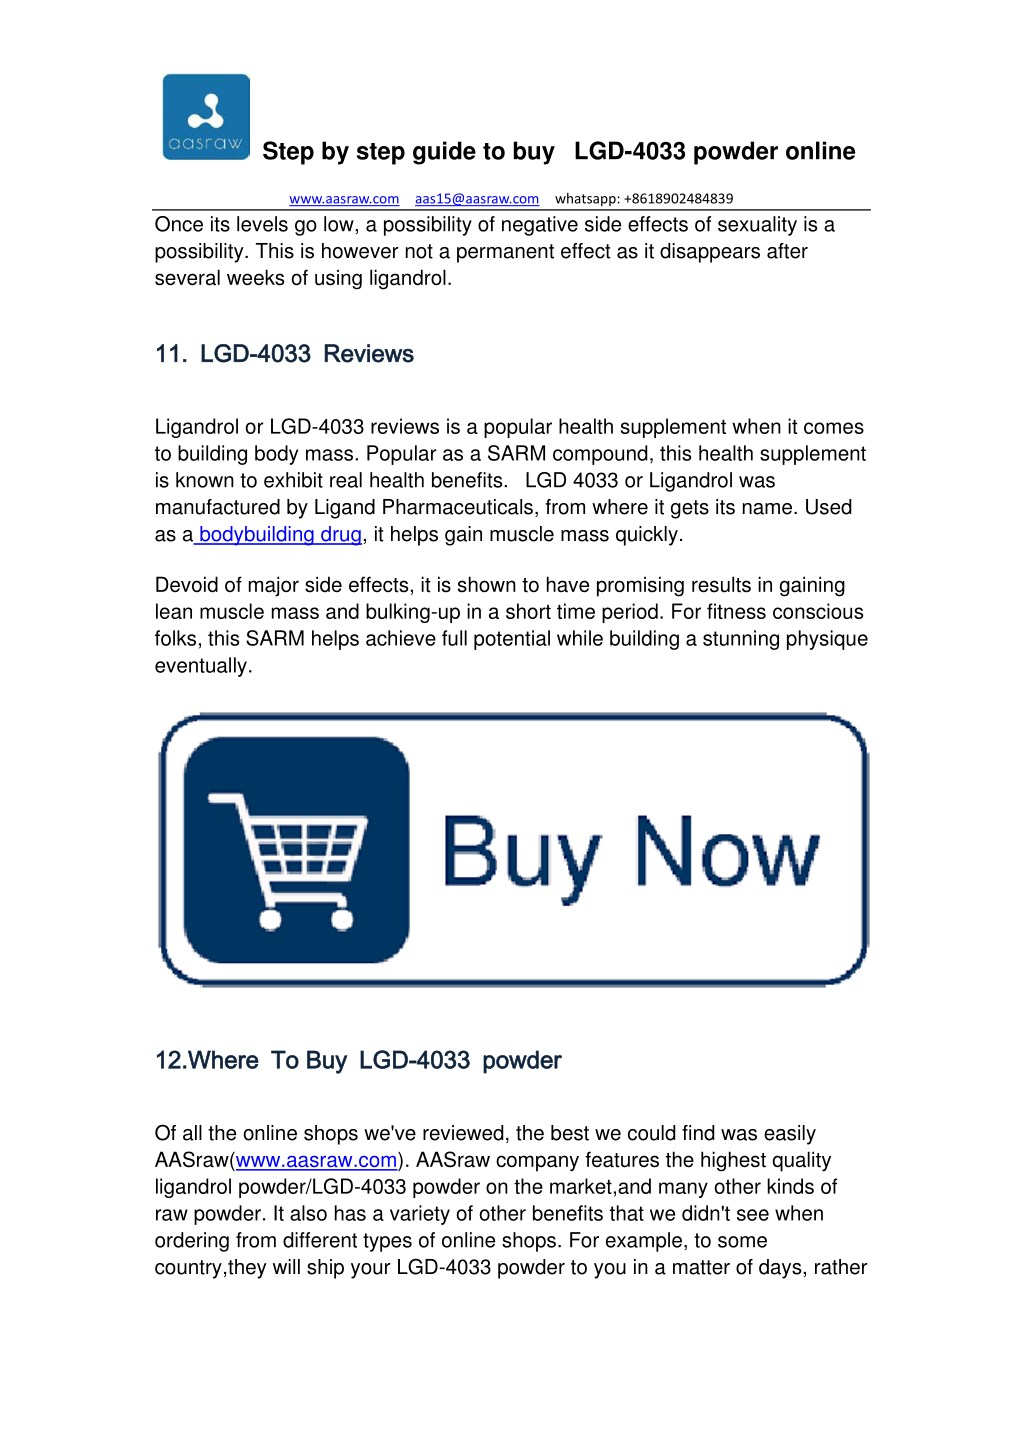 PPT - Step by Step Guide to Buy LGD-4033 Powder Online - AASraw